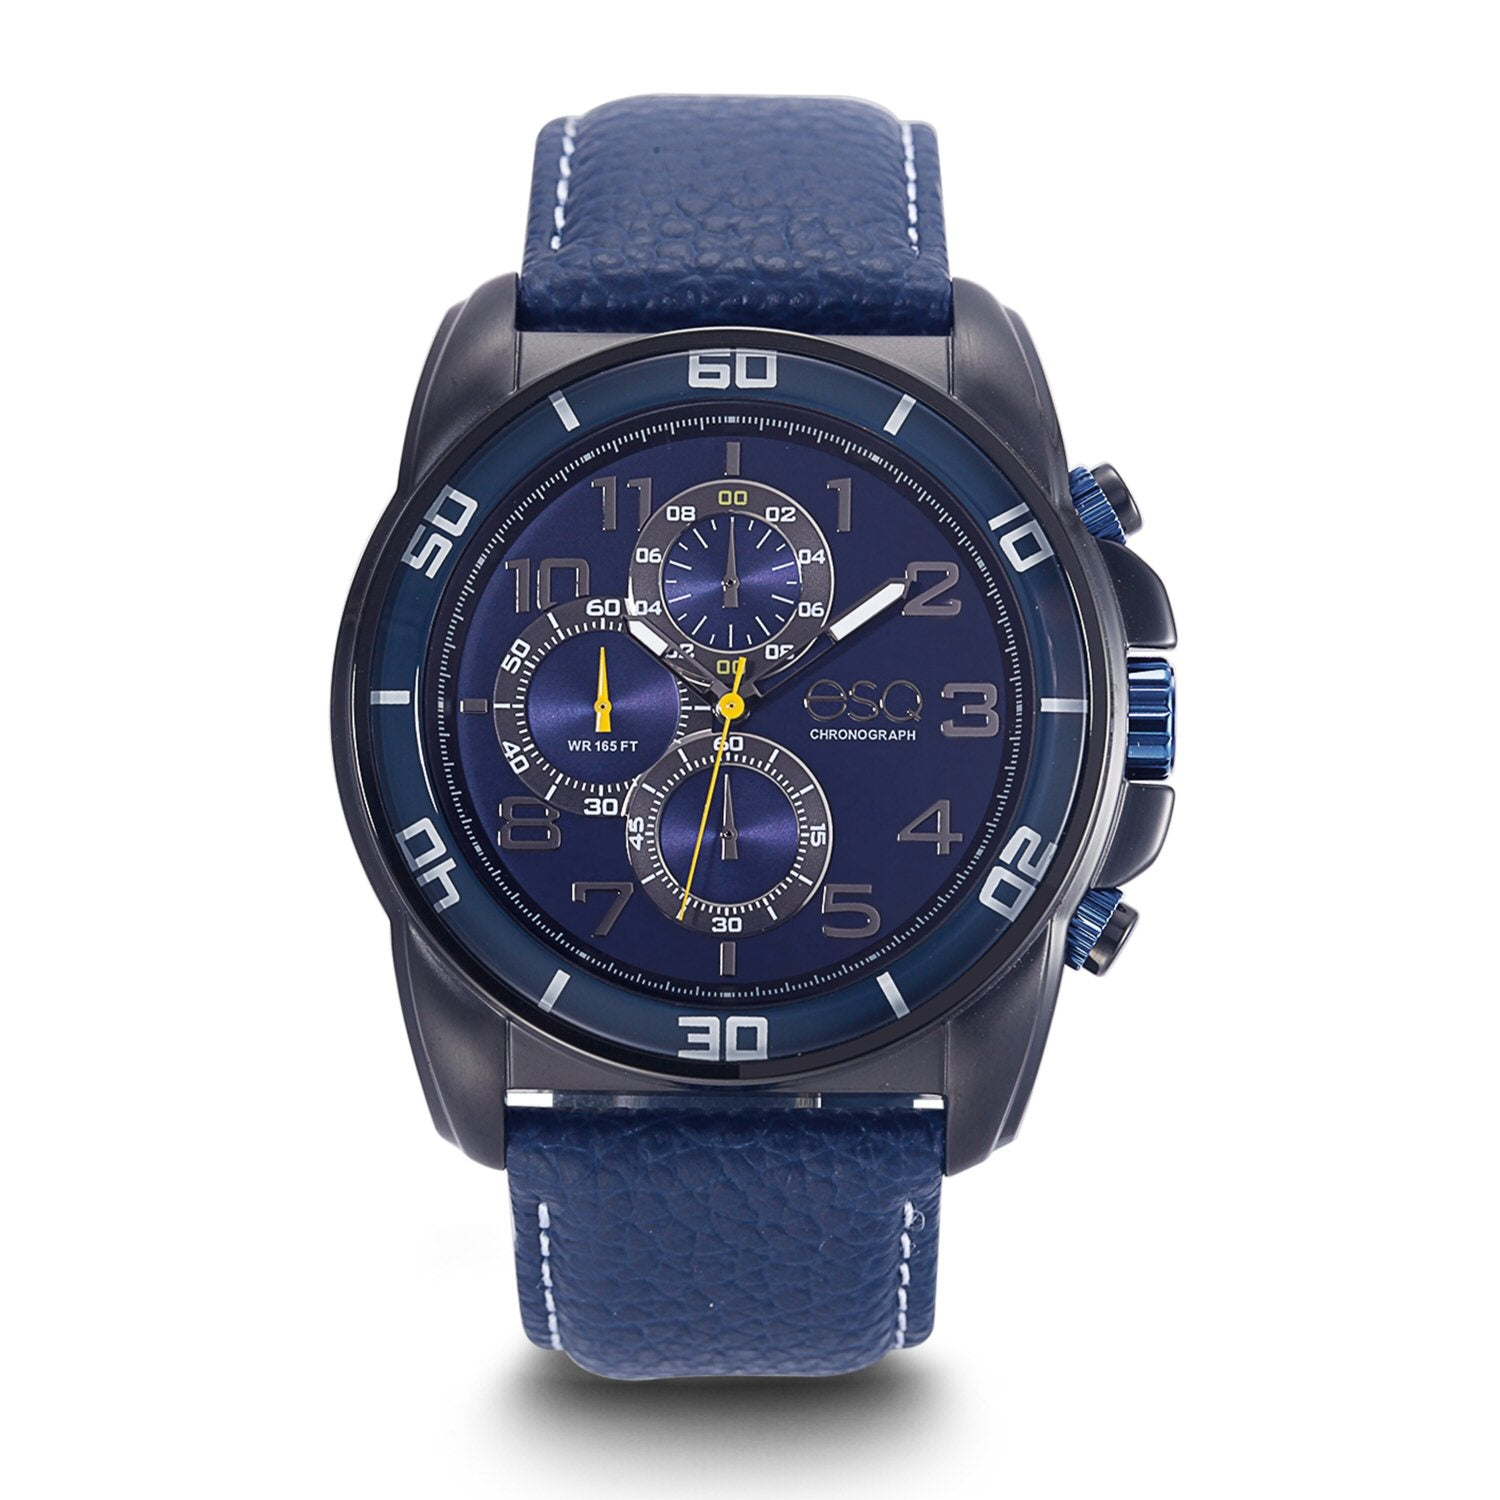 Men's ESQ0212 Stainless Steel Chronograph Watch with Black IP Finish, Textured Blue Dial, Edge-to-Edge Crystal and Genuine Leather Strap